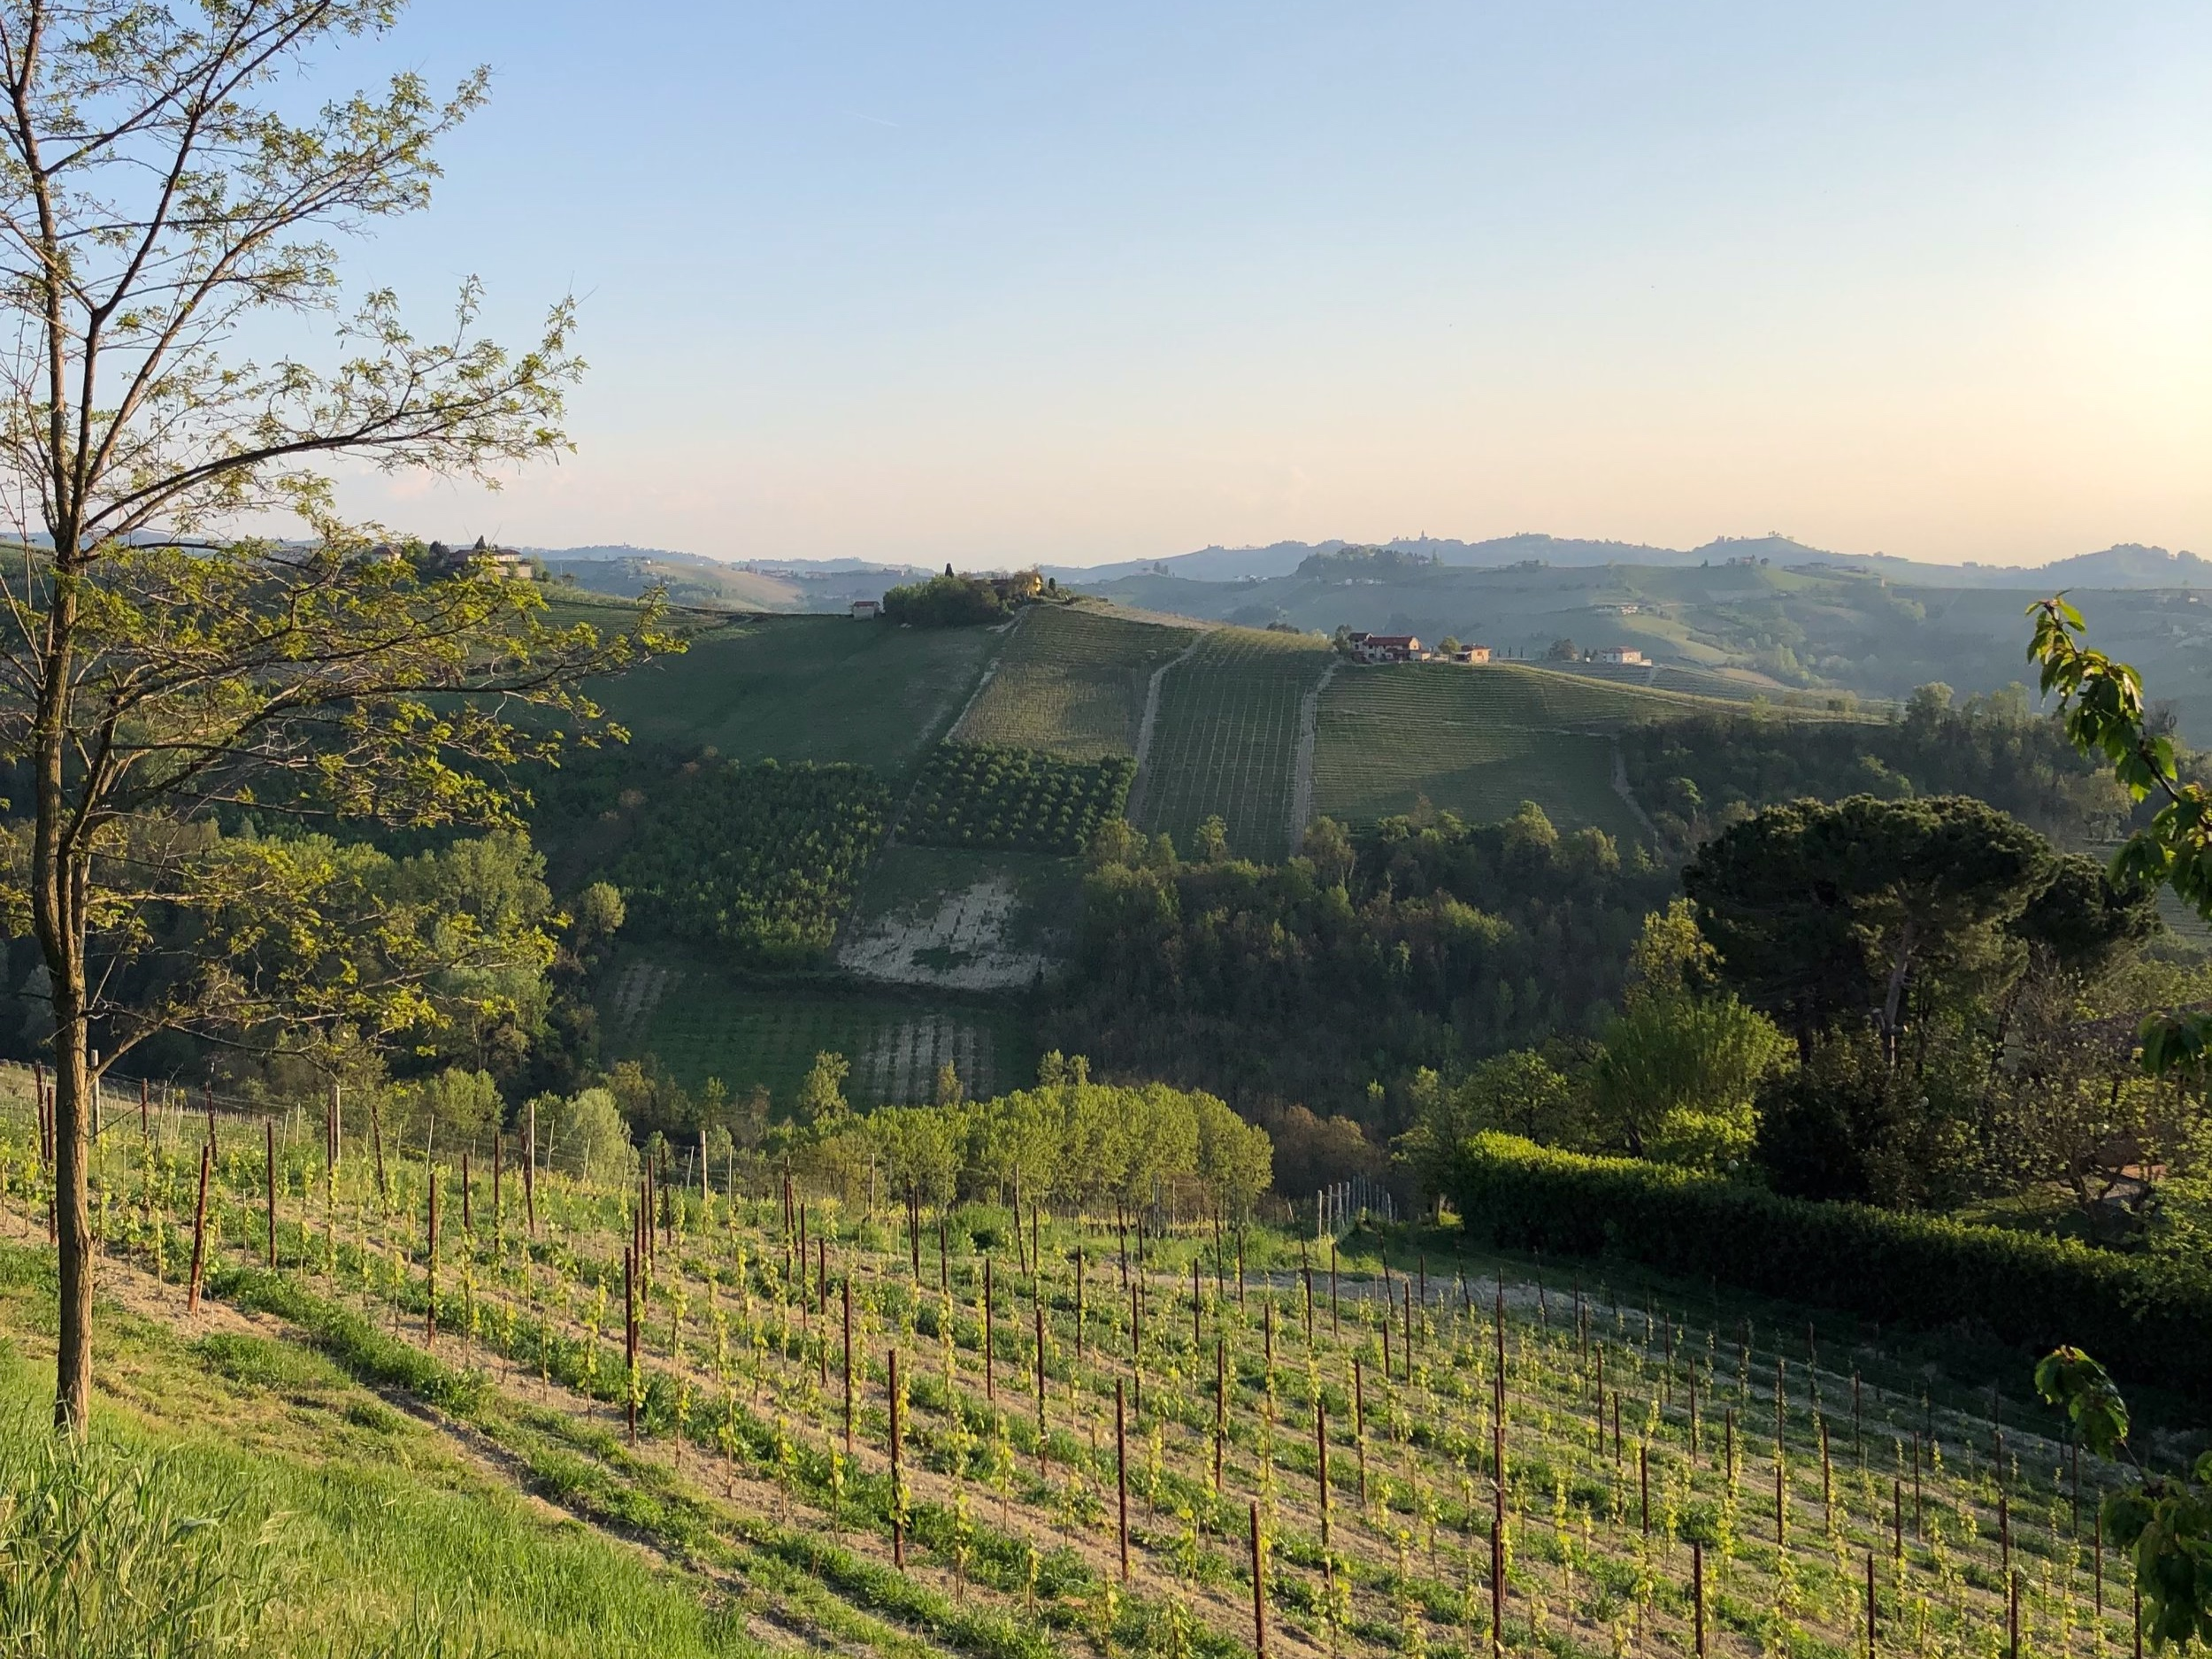 - Background picture: Spring time in Barbaresco, Piedmont